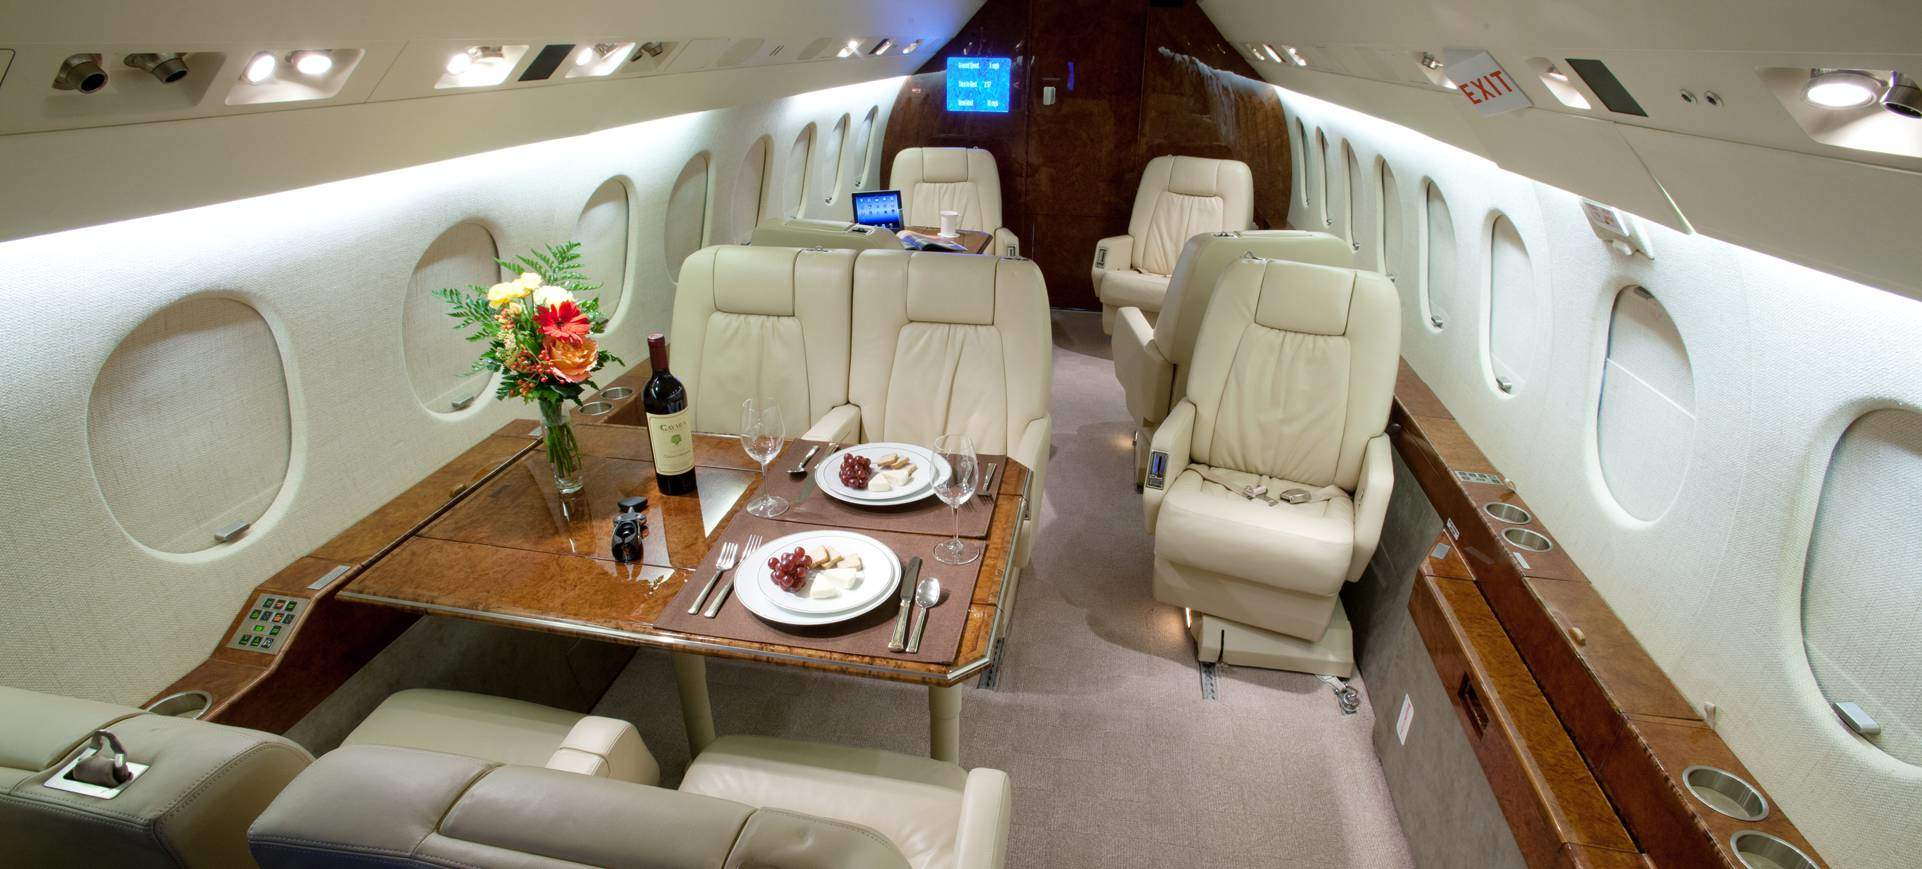 Falcon 2000 seating area and table